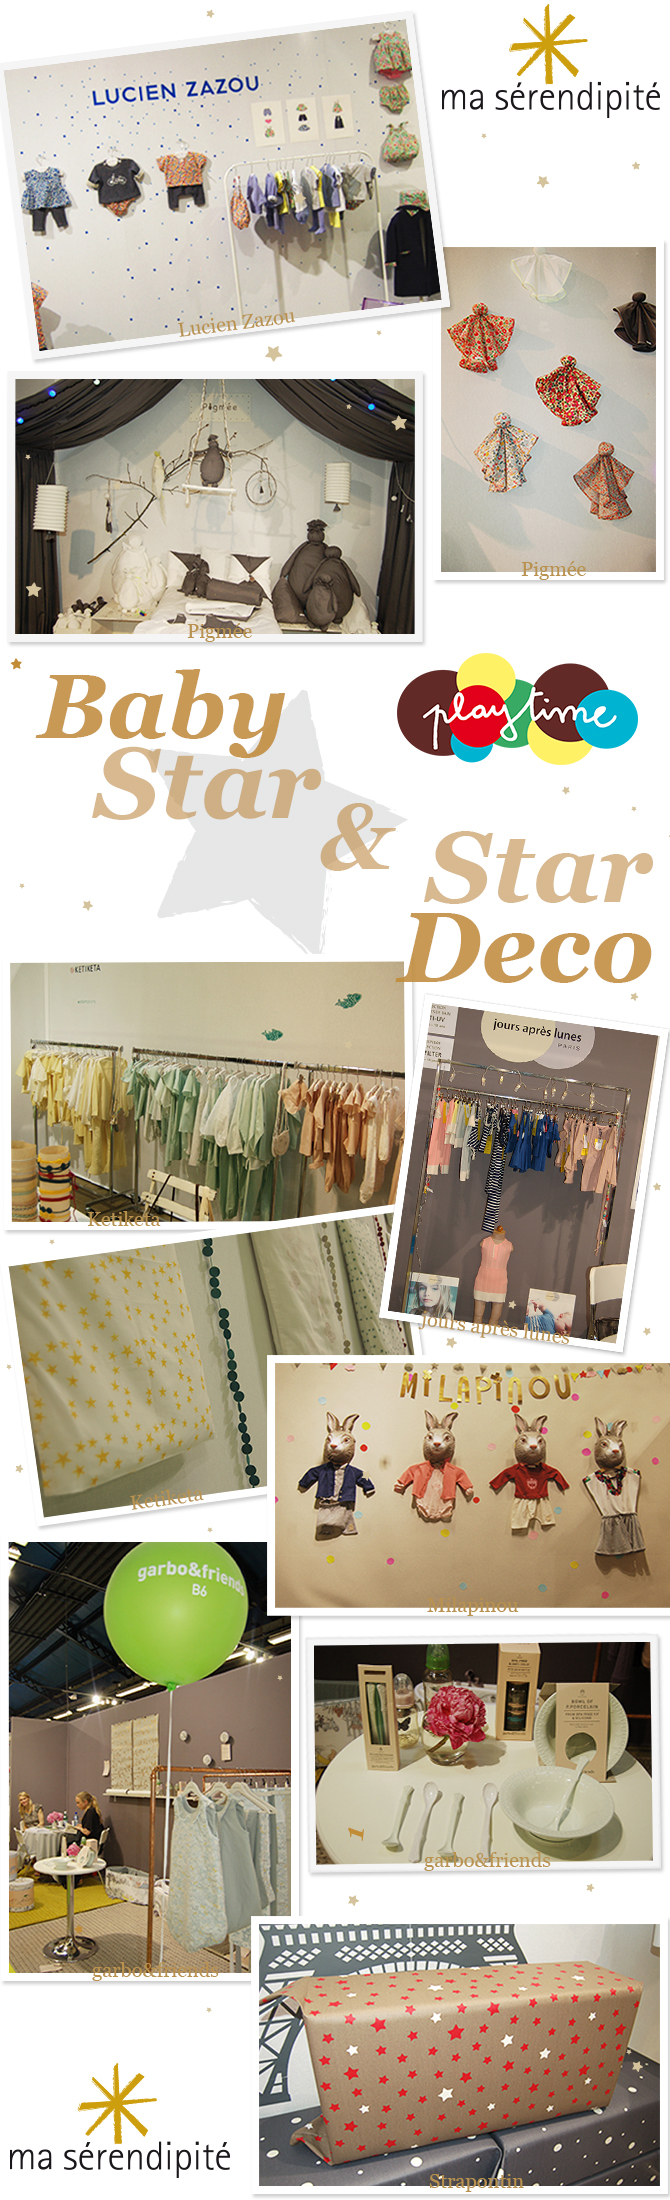 Star_Bebe_Star_Deco_Playtime_Paris_0713